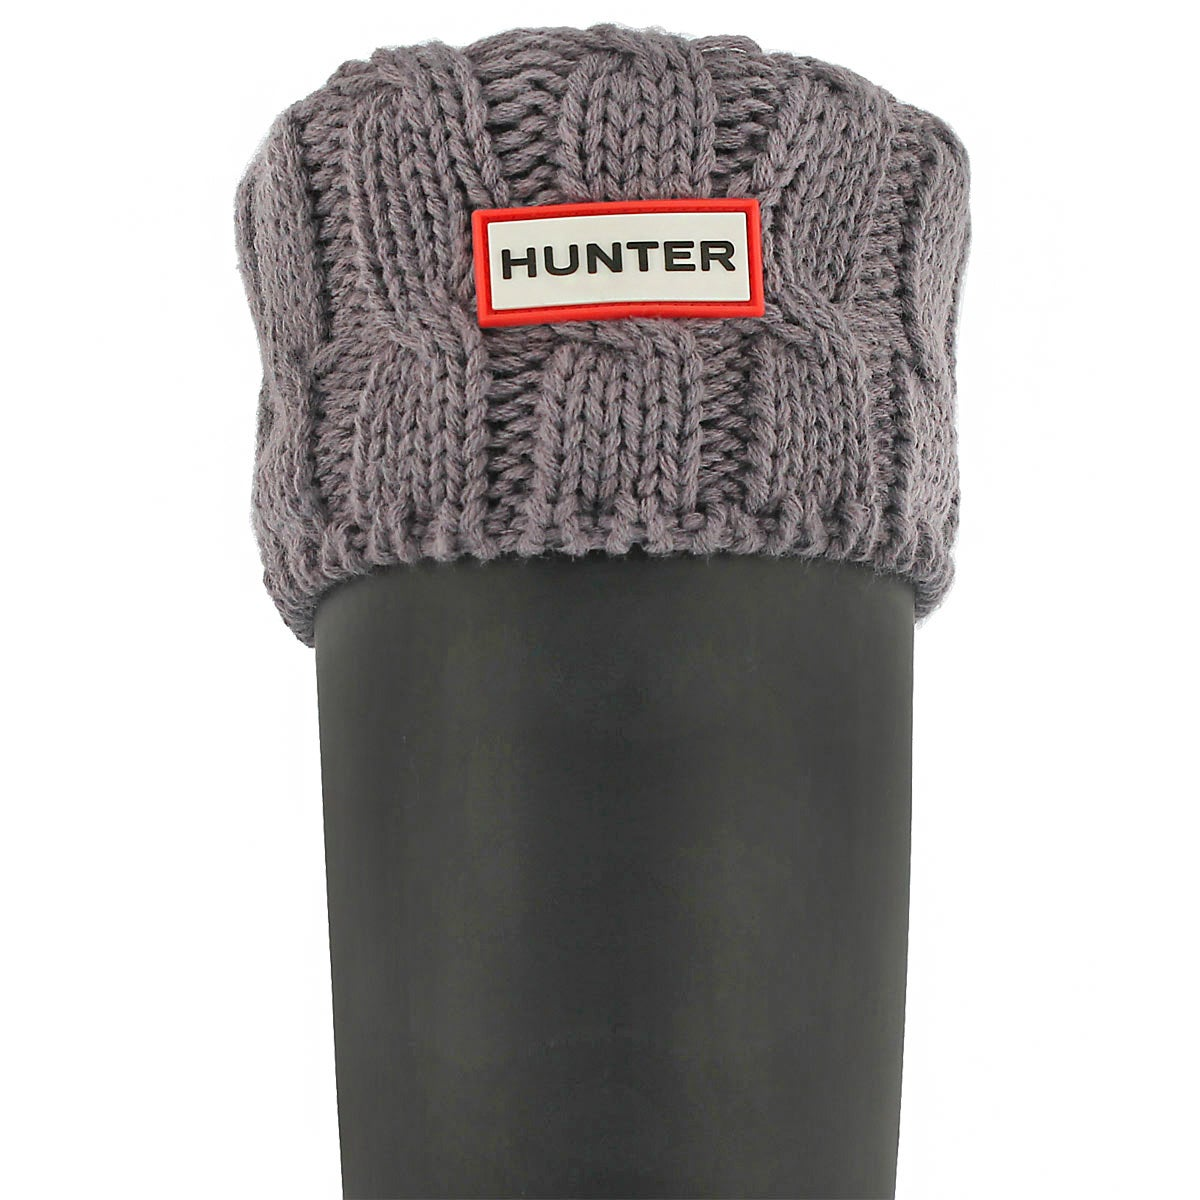 Lds 6 Stitch Cable thundercld boot sock